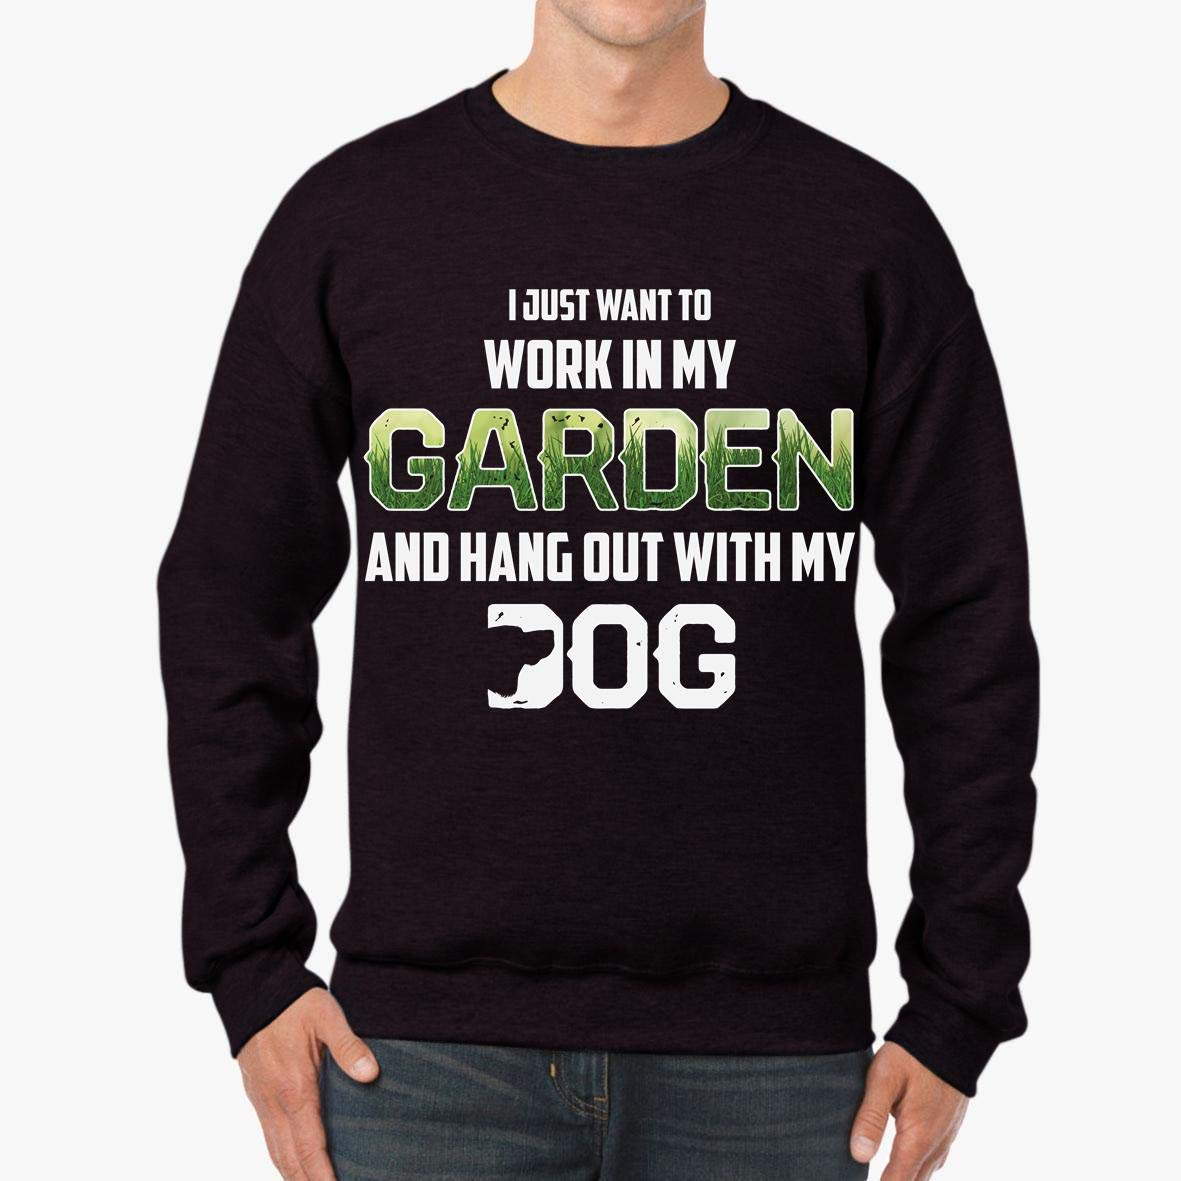 Work in My Garden and Hang Out with My Dog Funny Unisex Sweatshirt tee